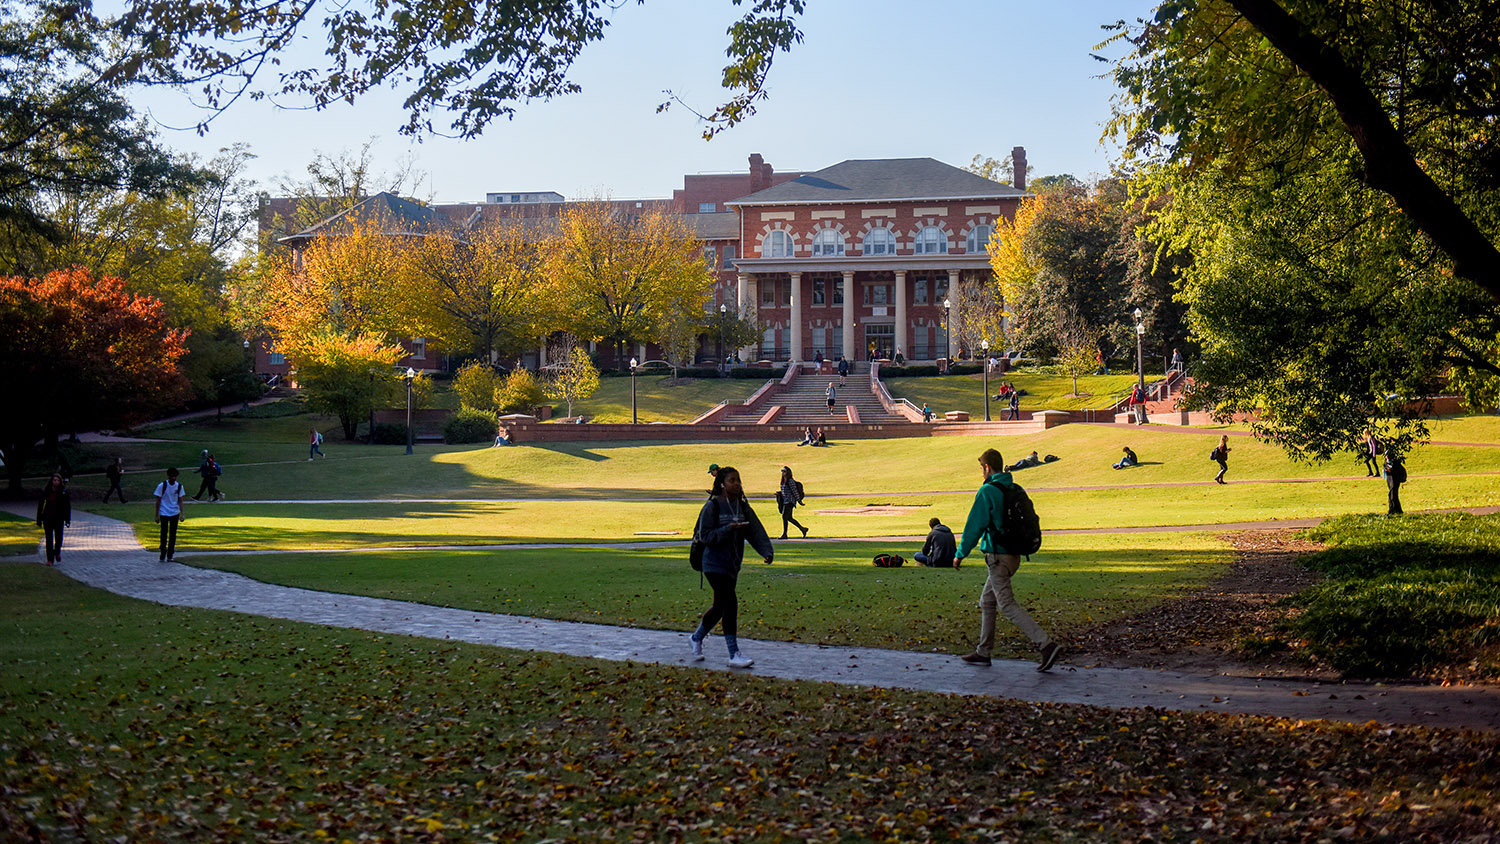 Students walk across NCState's court of north carolina